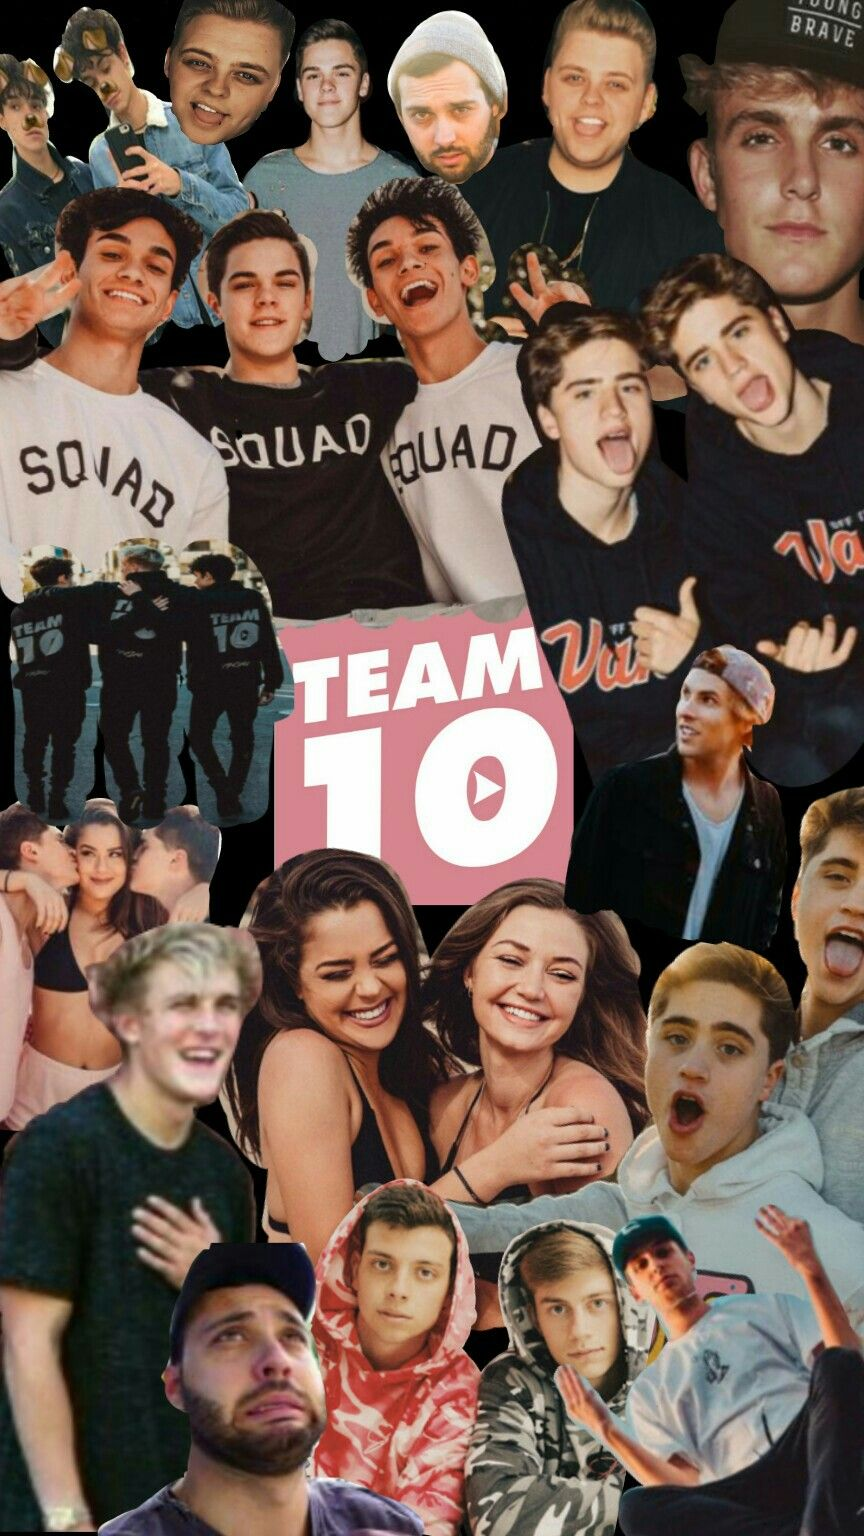 Original Team 10 collage phone wallpaper made by me (Gabby Derryberry). Includes Jake